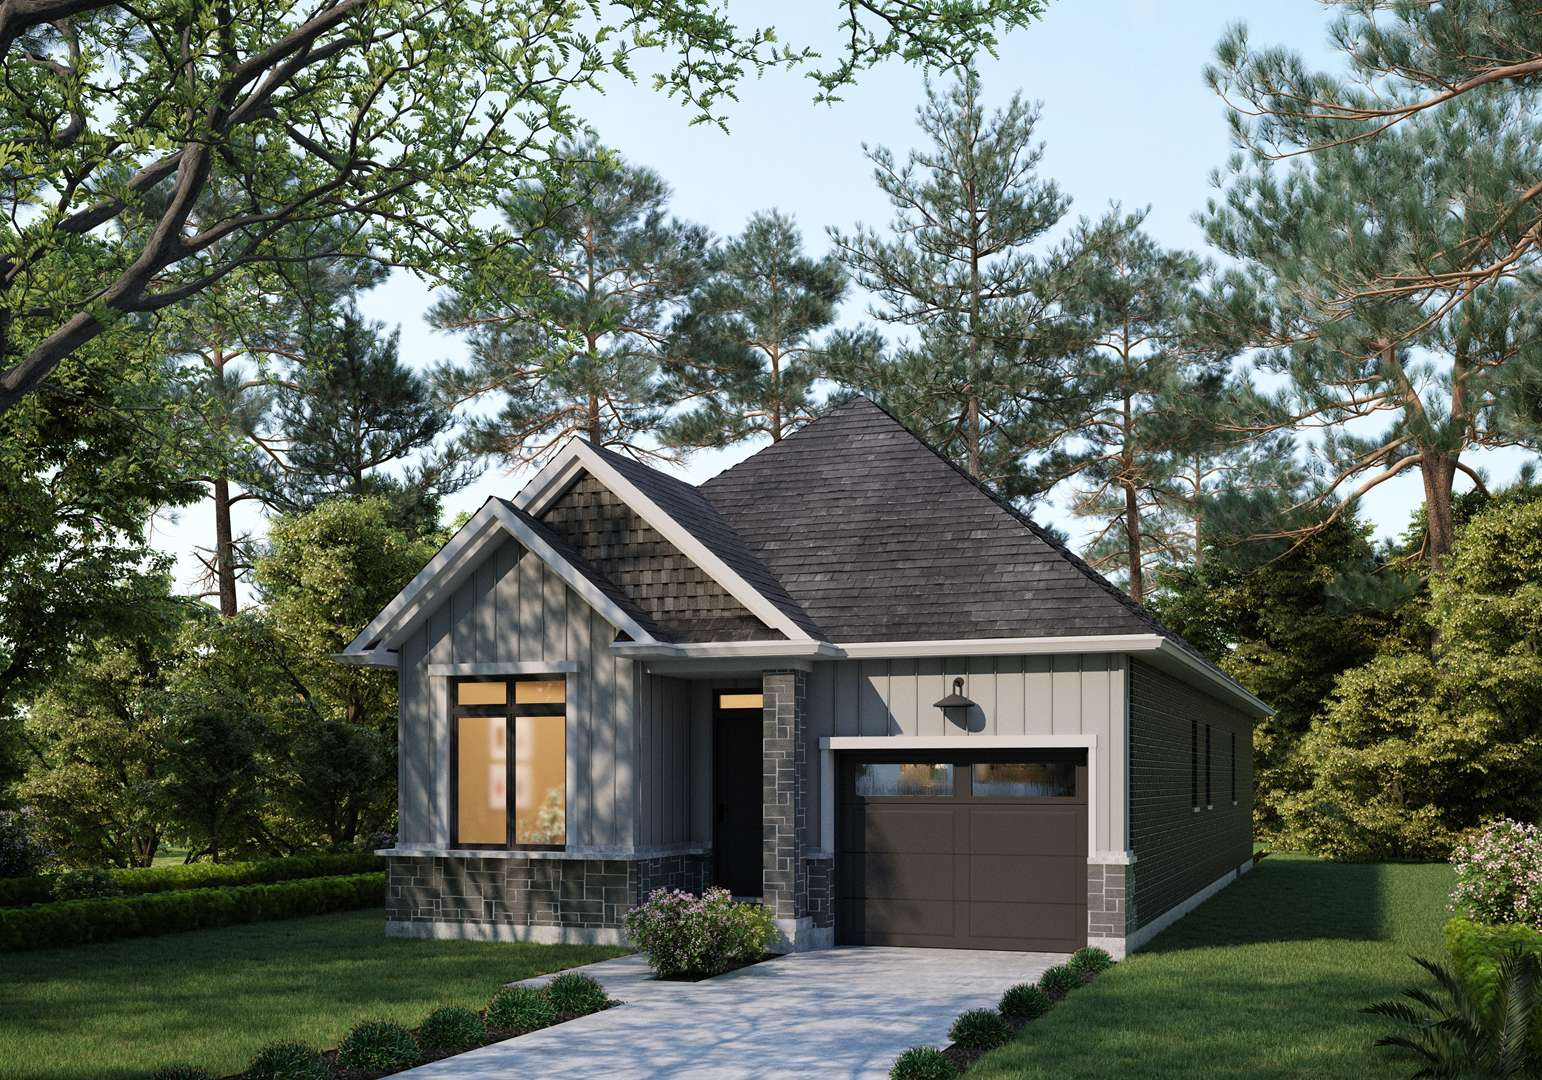 Southpoint_Bungalow_Exterior1